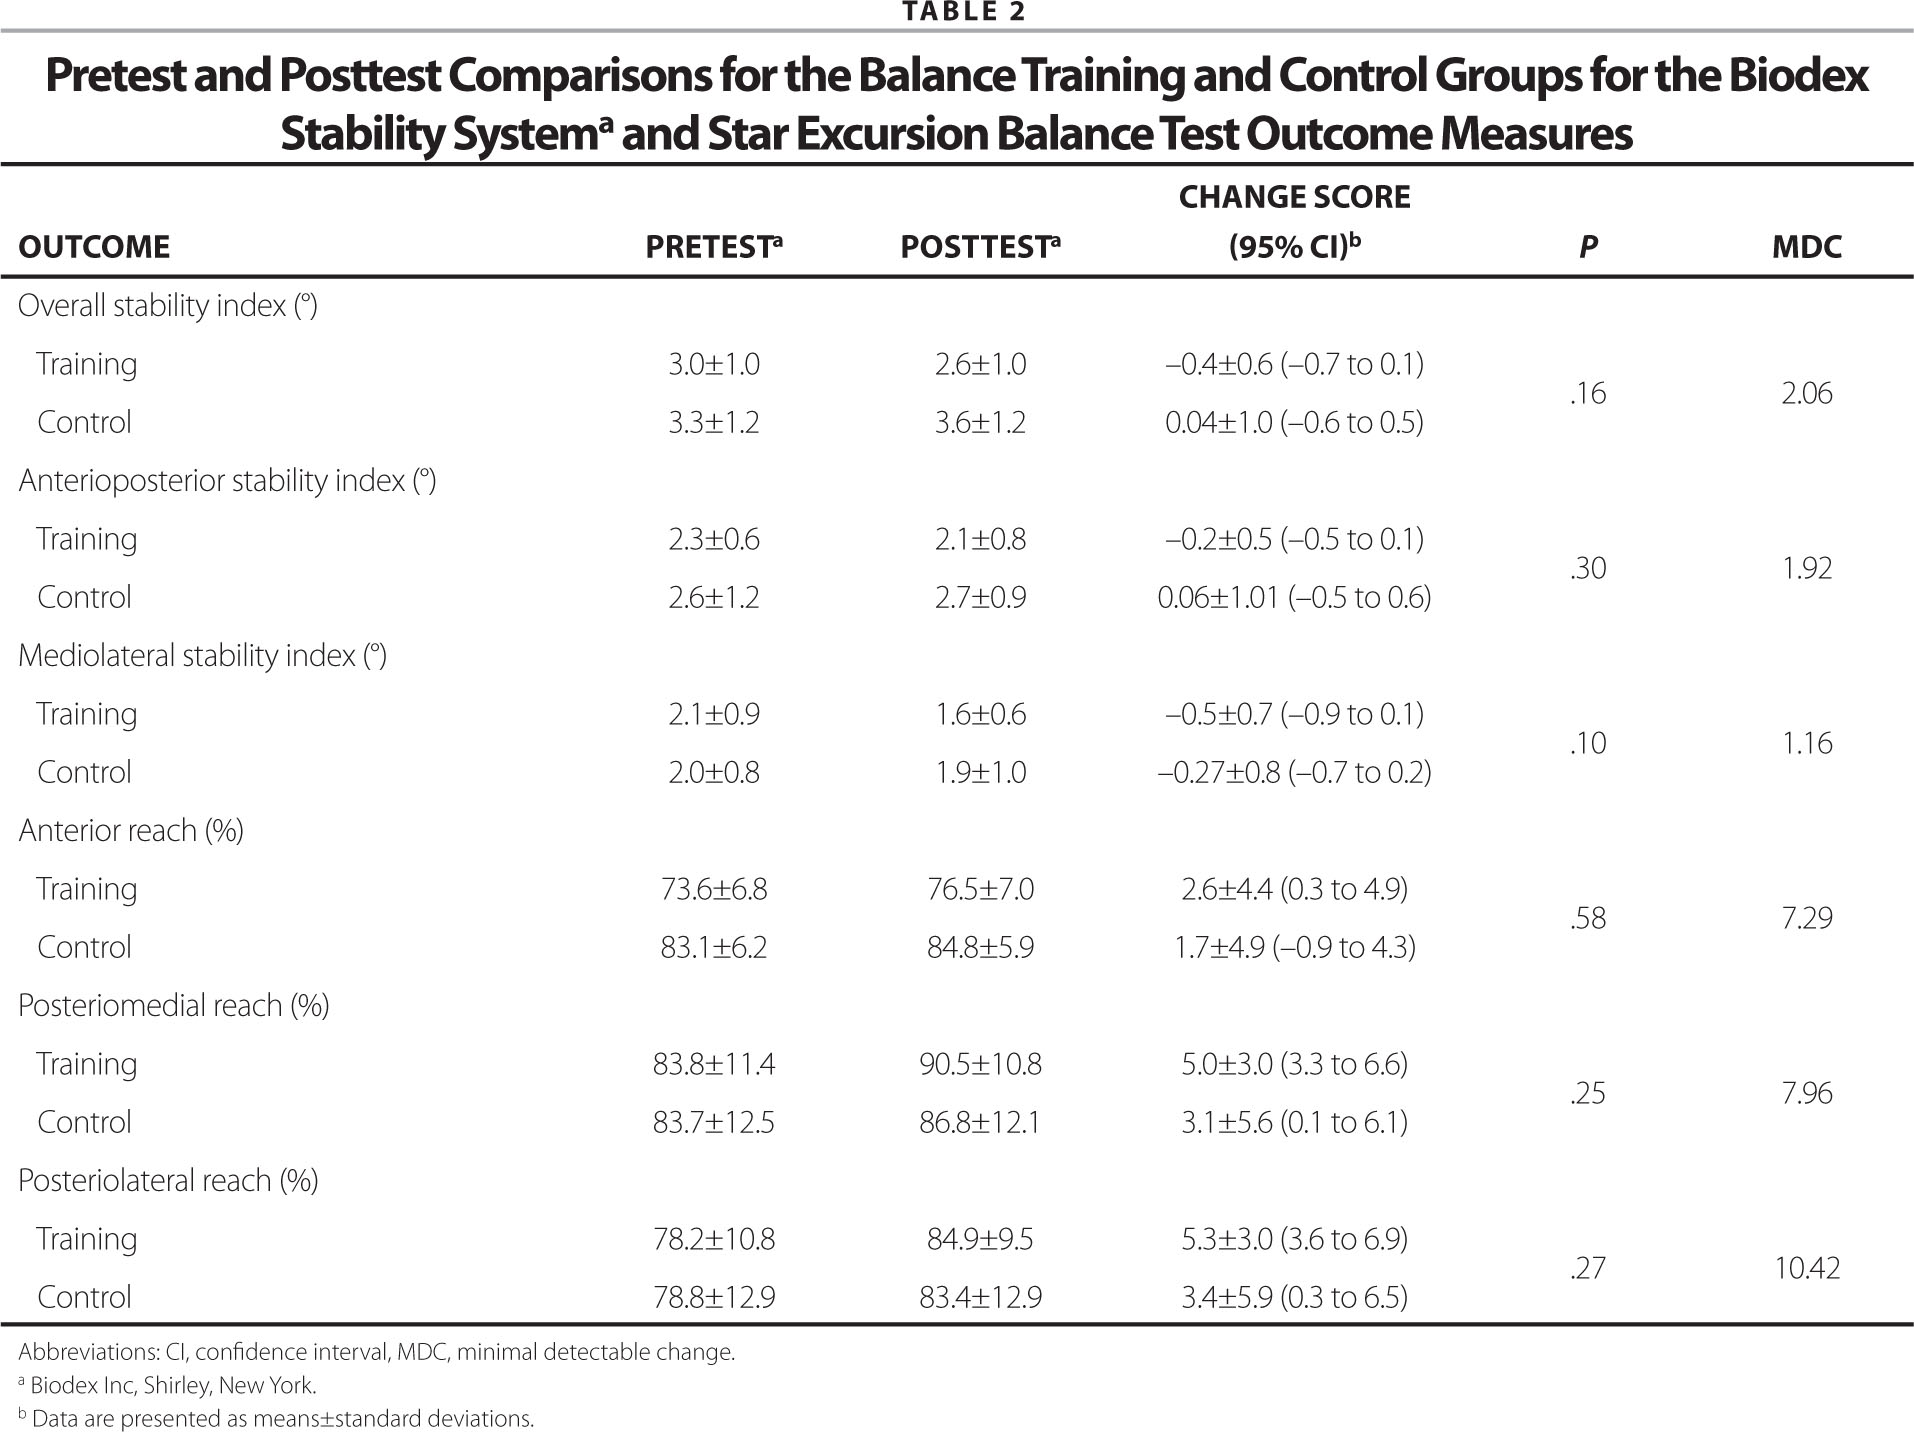 Pretest and Posttest Comparisons for the Balance Training and Control Groups for the Biodex Stability Systema and Star Excursion Balance Test Outcome Measures